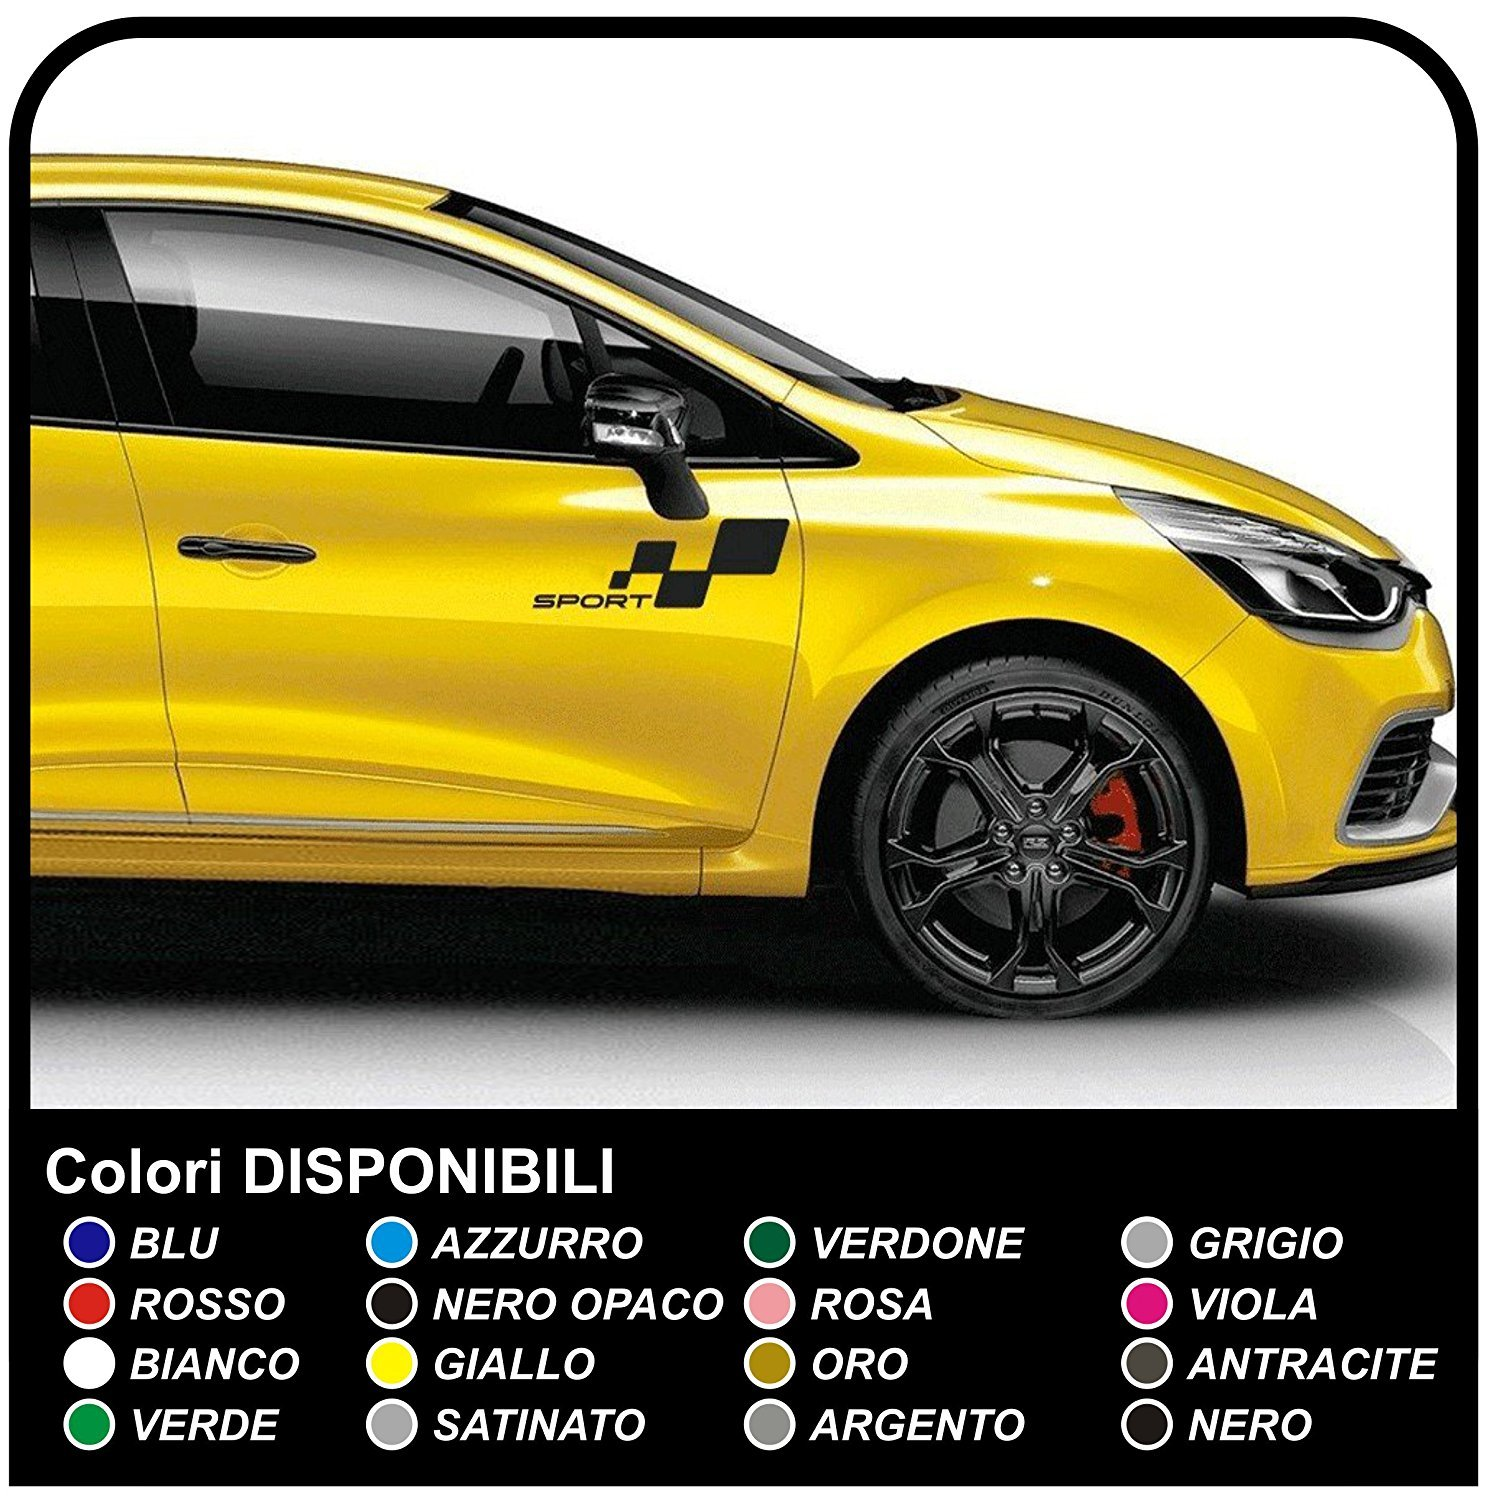 60 off autocollants pour clio rs et megane sport megane rs voiture decal set graphique rayures. Black Bedroom Furniture Sets. Home Design Ideas